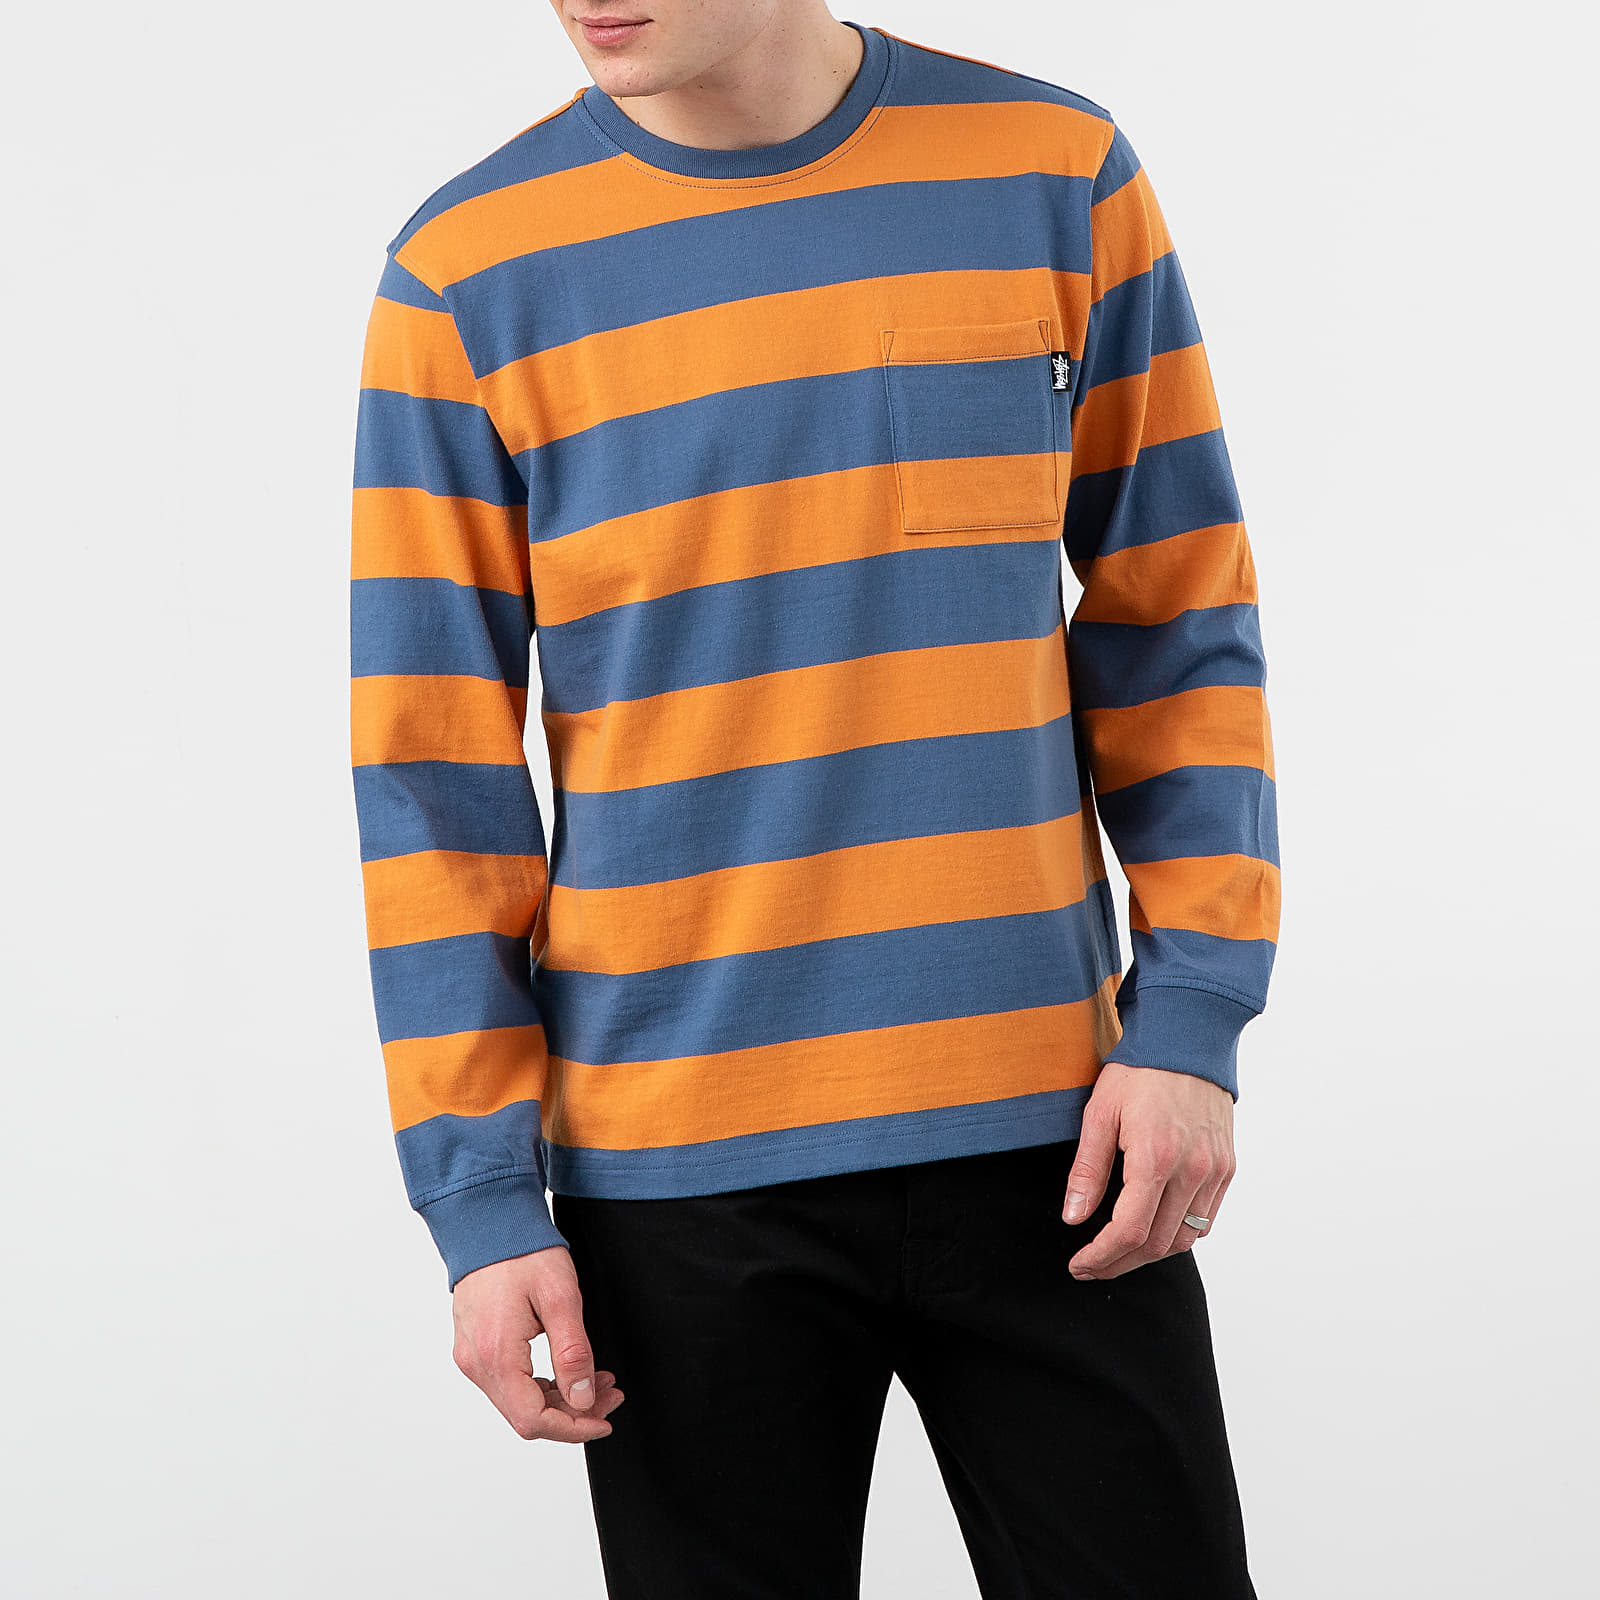 Stüssy Classic Stripe Long Sleeve Tee